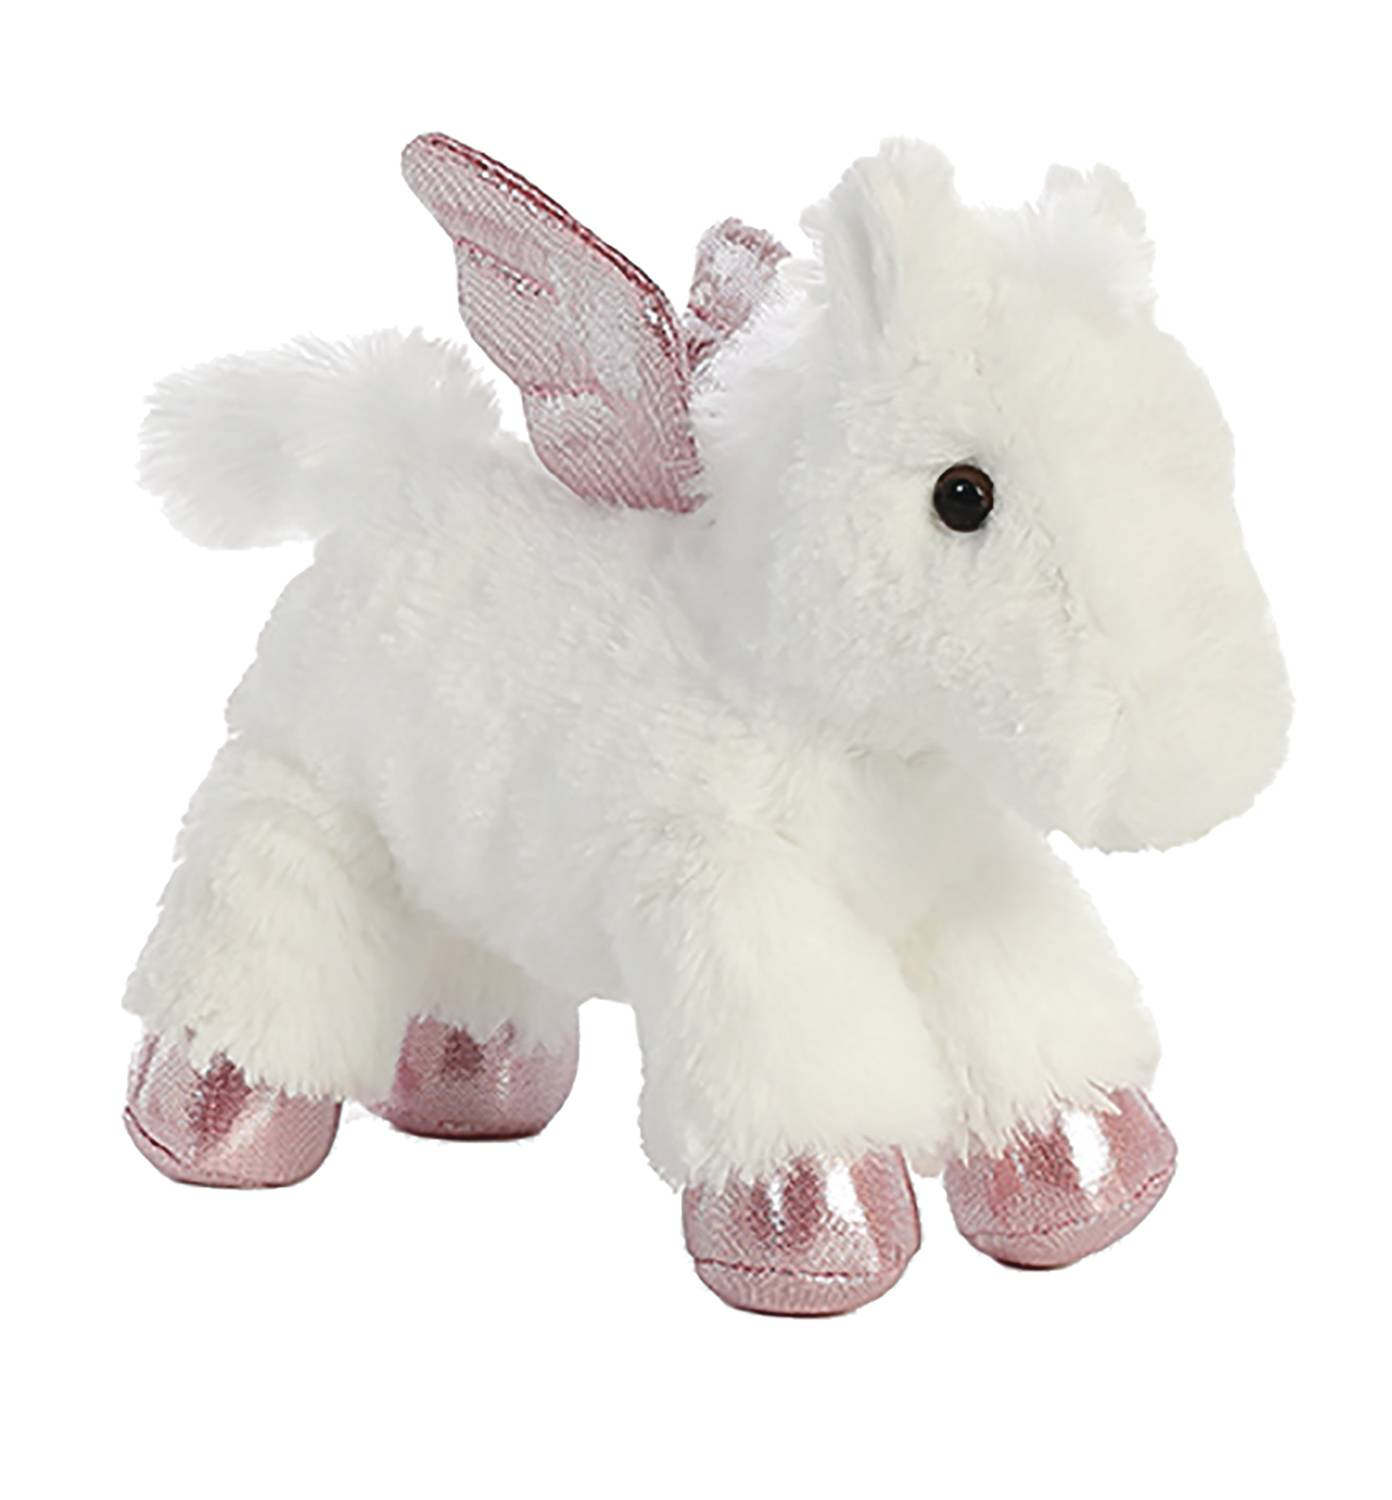 AURORA PEGASUS SKIES 8IN PLUSH